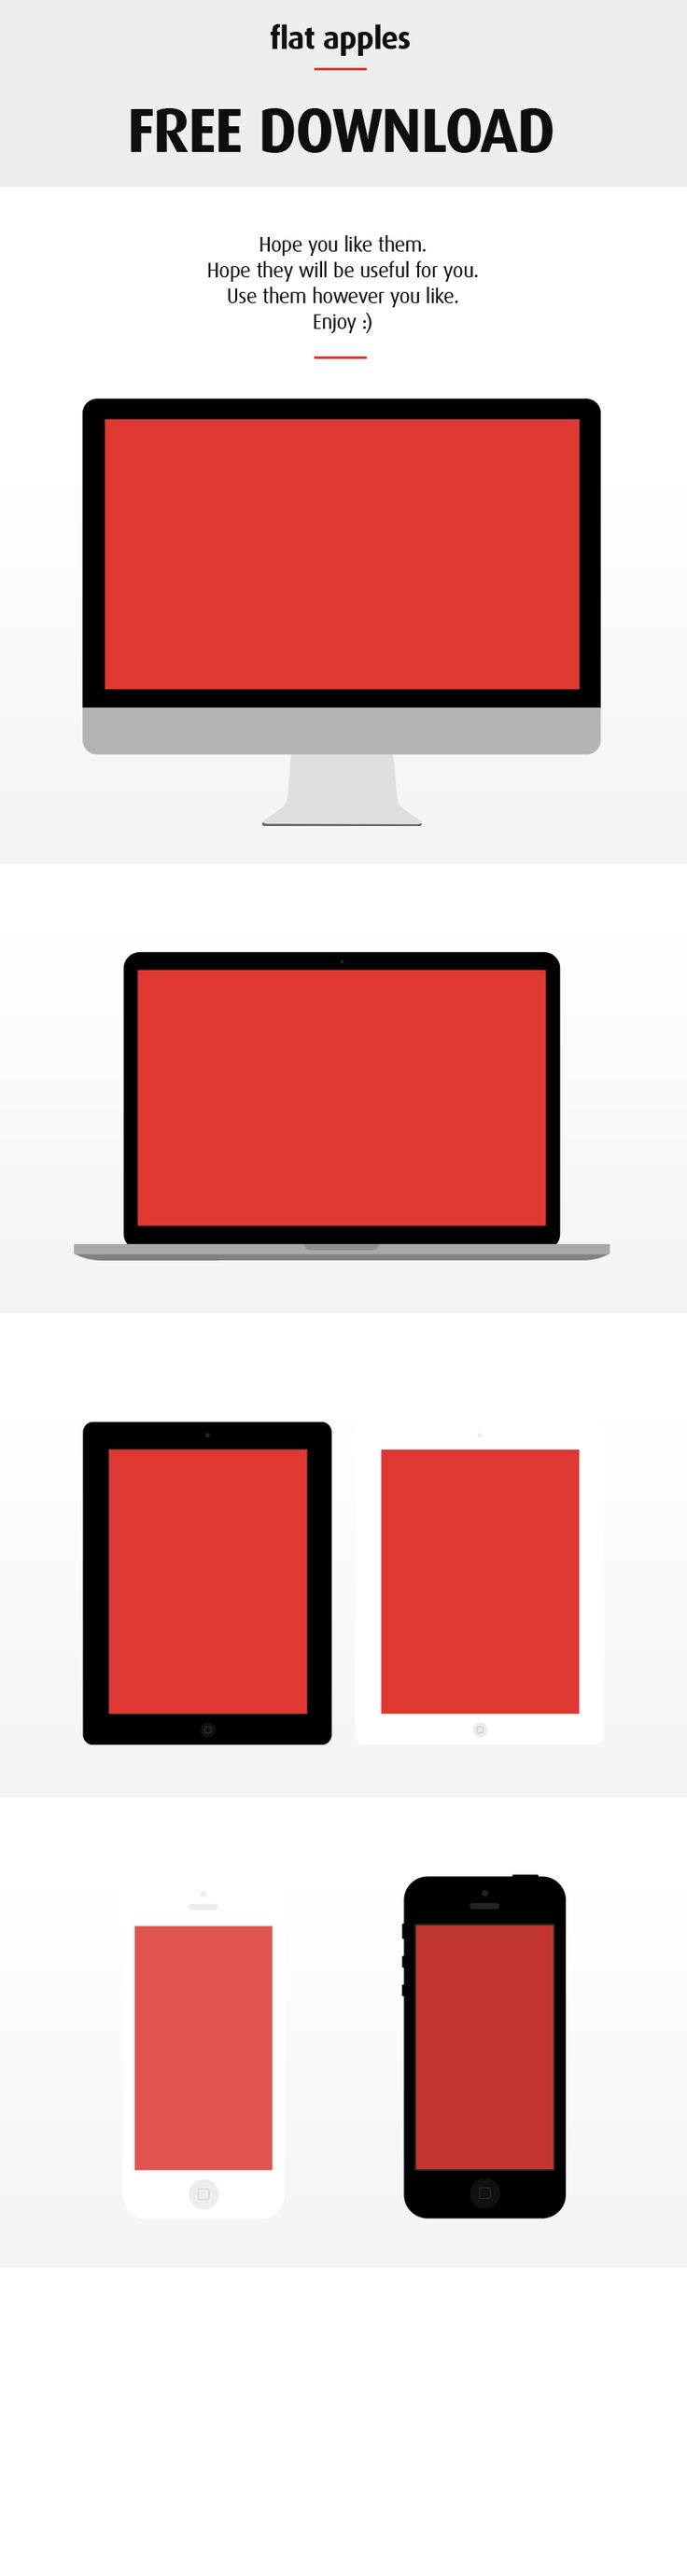 I needed something flat to present a design project in it, but I couldn't find anything. So I made a quick pack with iMac, iPad, mac bookPro and iPhone ( both black ), packed them and here they are :). Hope that you could use them somewhere, feel free to do whatever you want with them. --------------------- CHECK OUT the full resolution attached --------------------- --------------------- Tnx for publishing it, Codrops :) - http://tympanus.net/codrops/collective/collective-60/